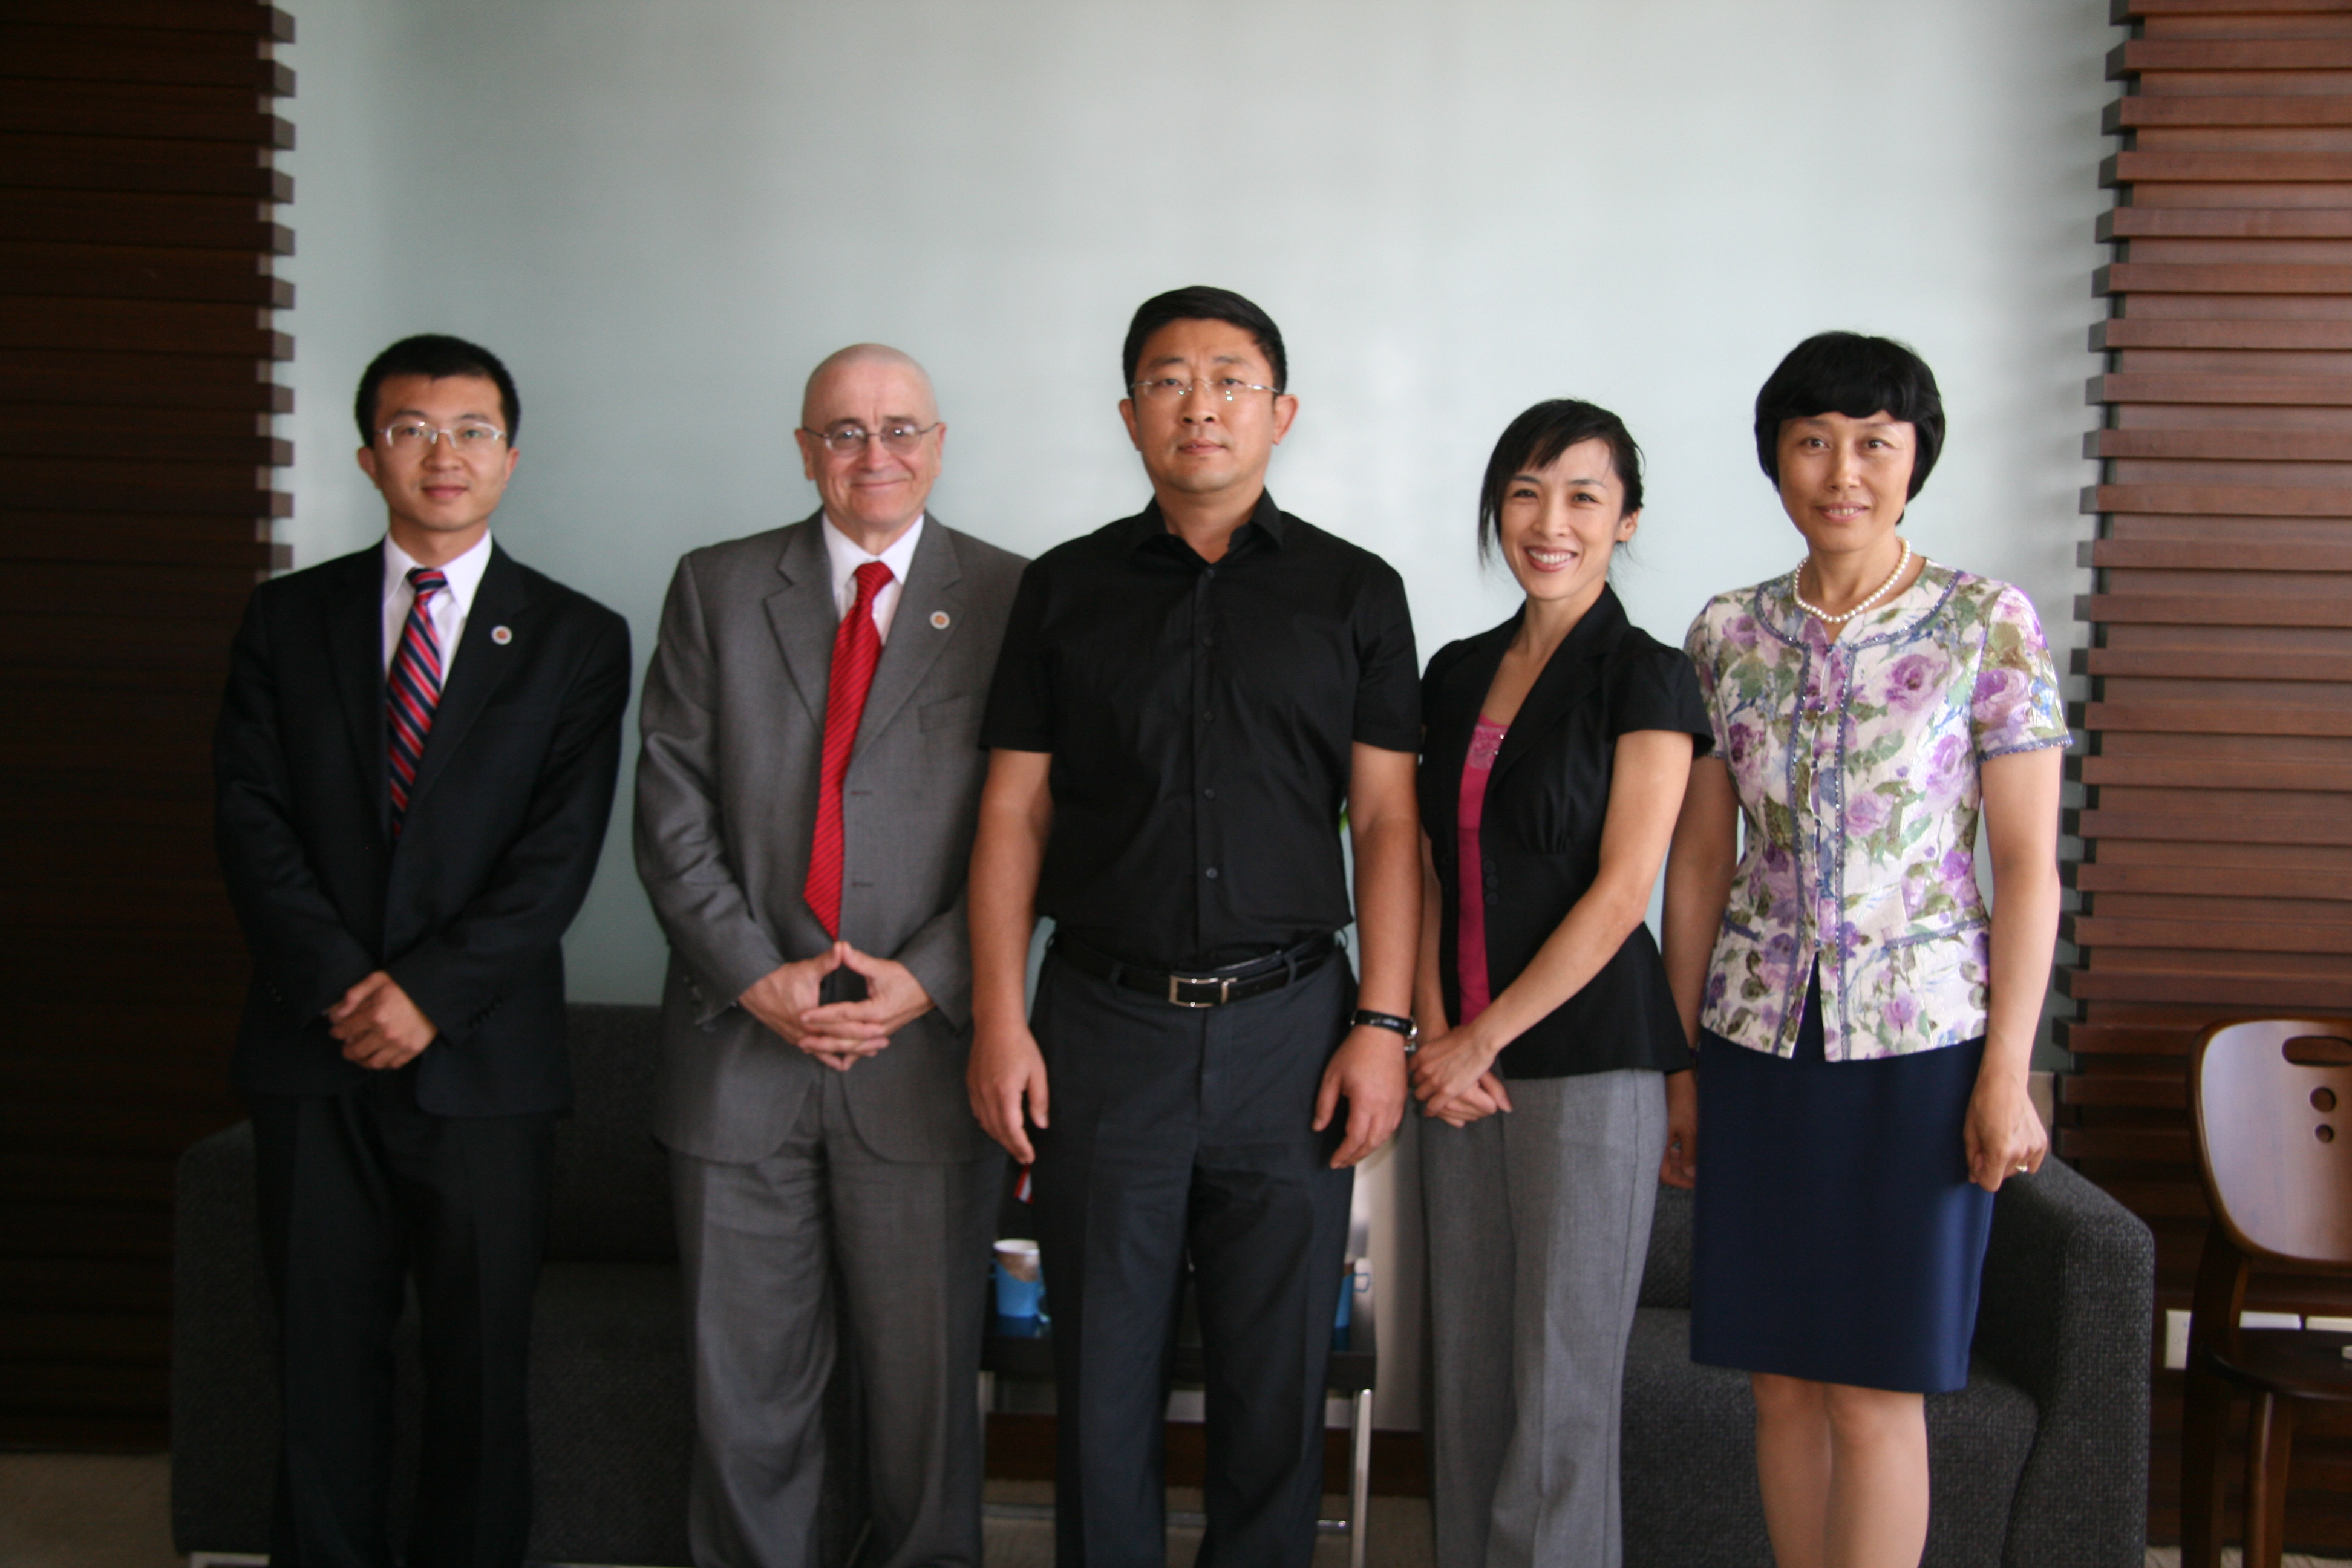 Dalian Nationalities Partnership 08-08-12